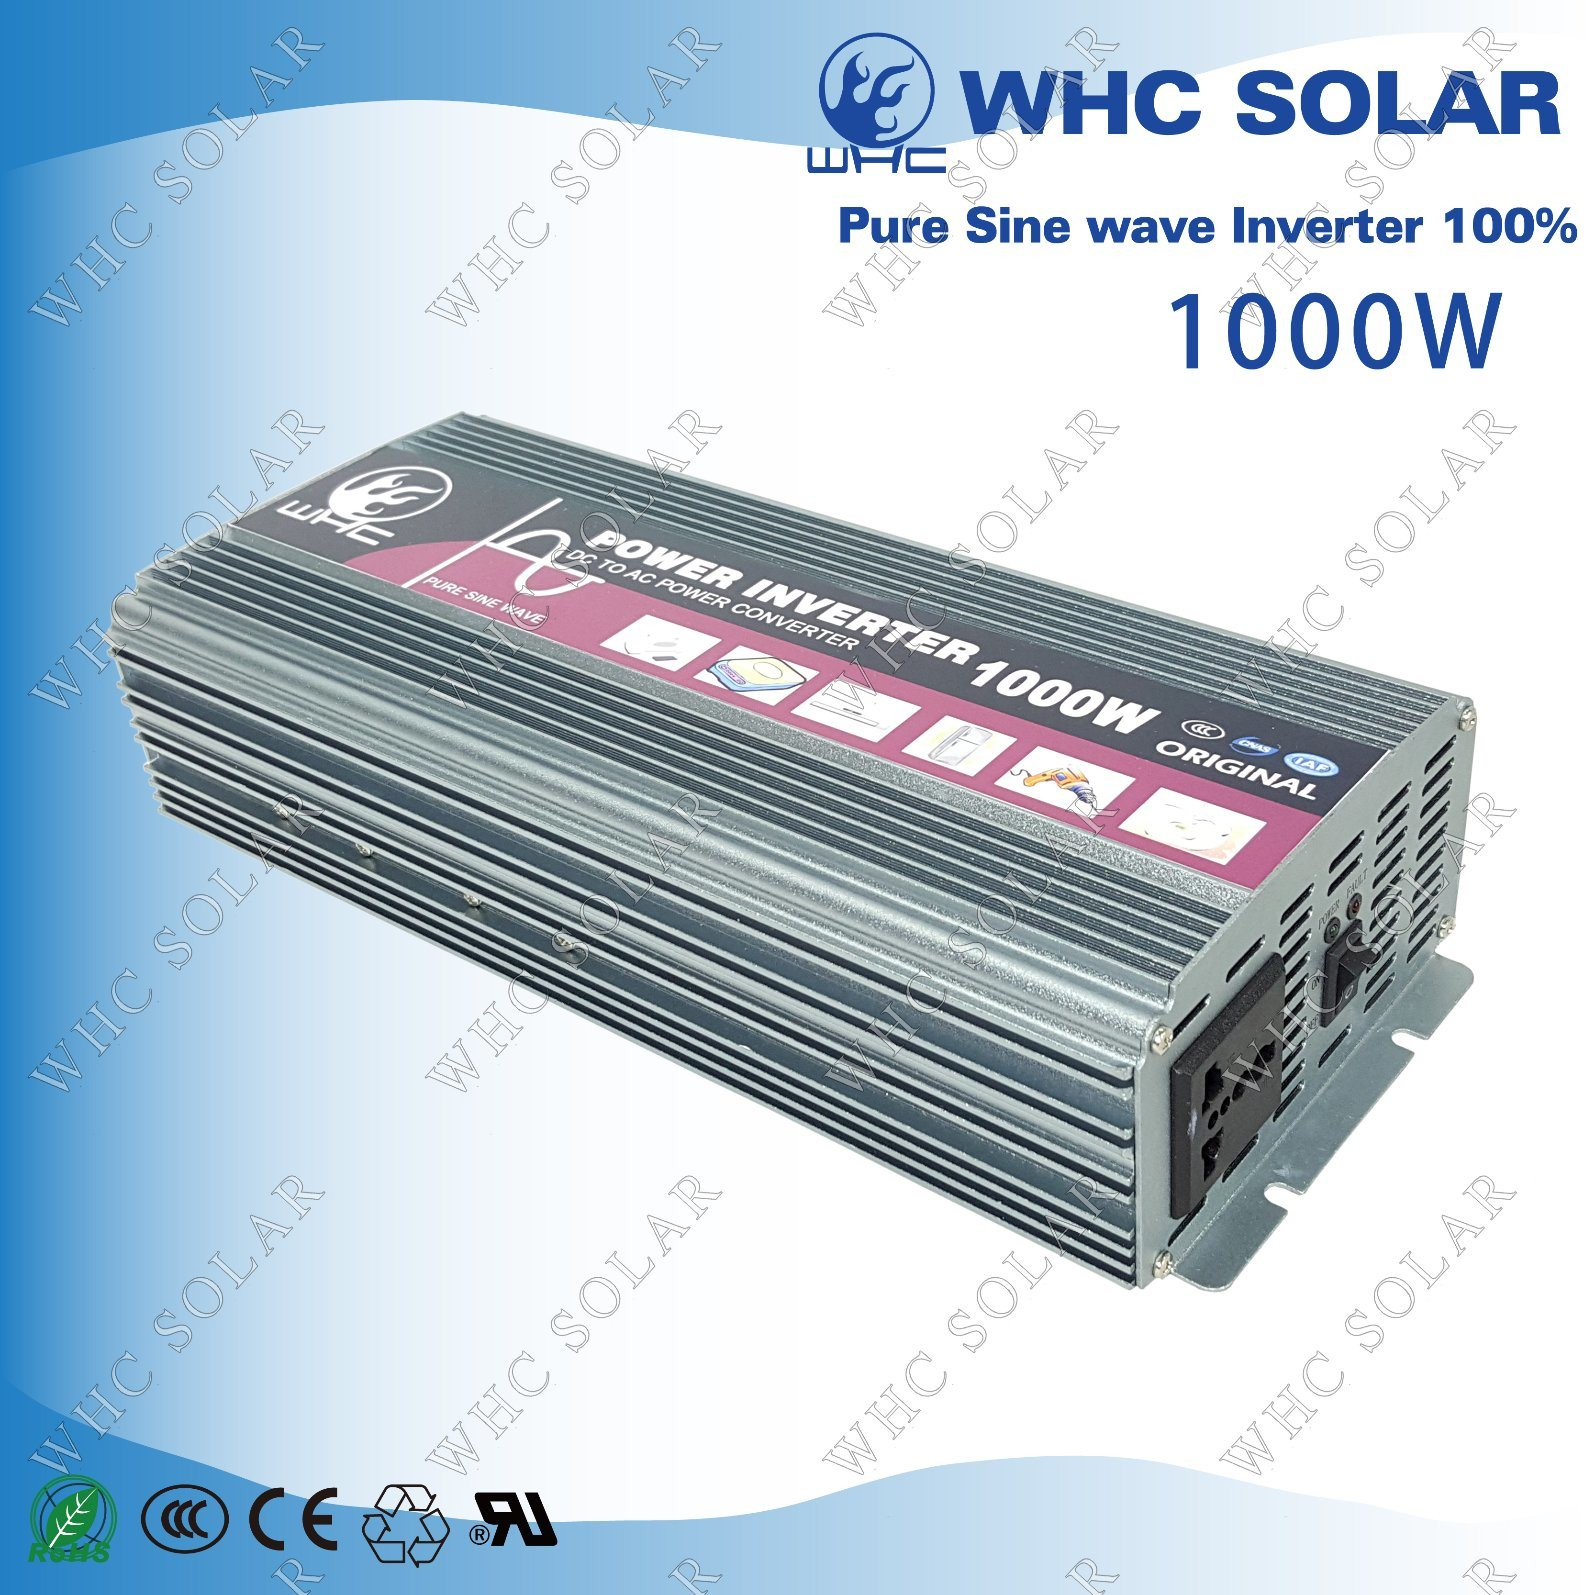 12V1000W Full Power High Frequency Pure Sine Wave Inverter